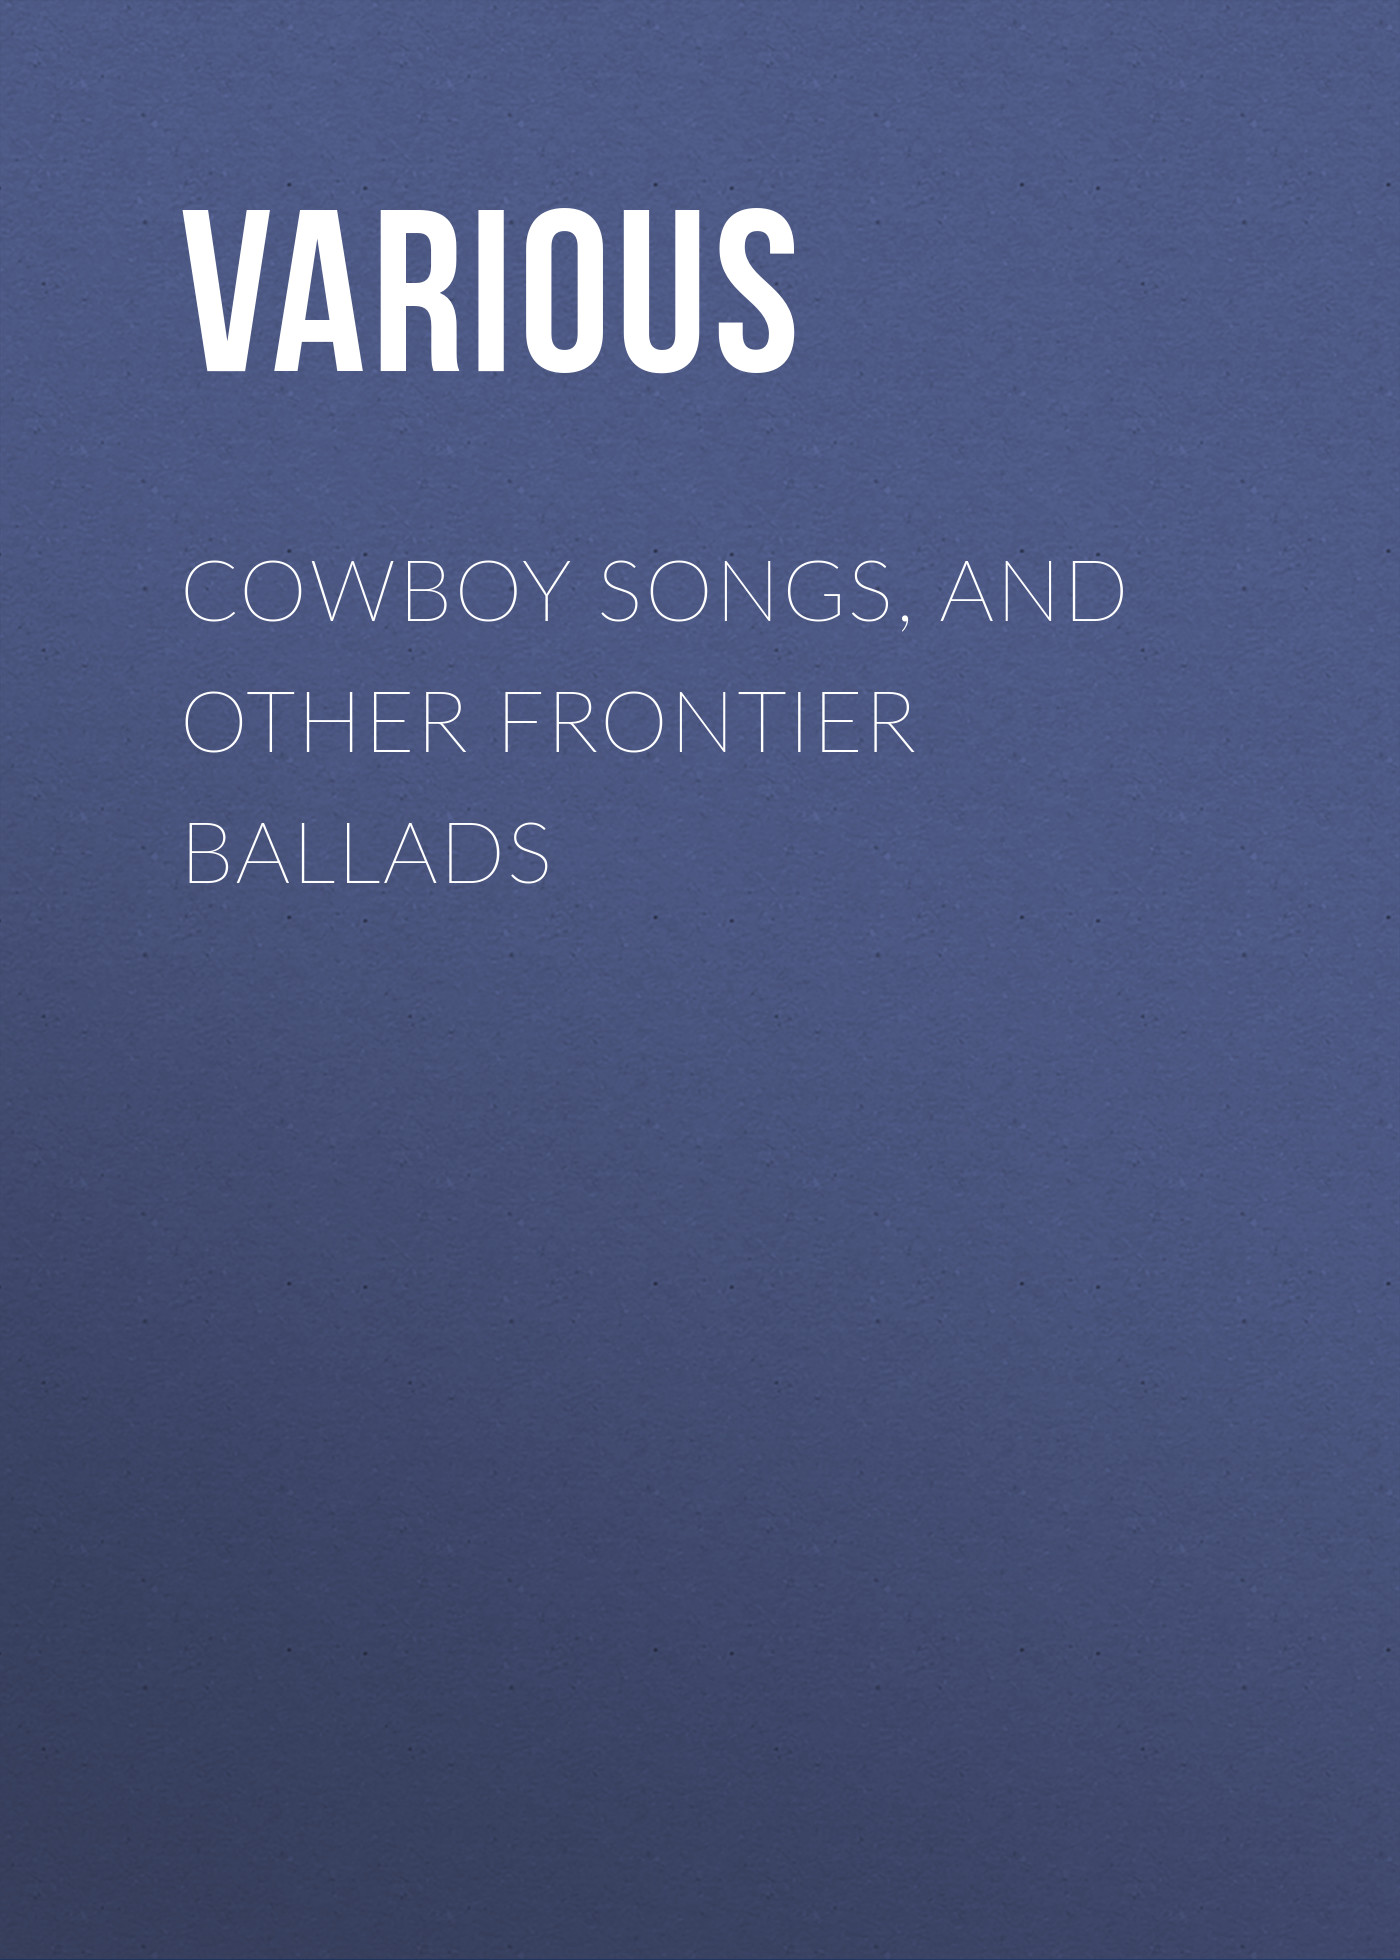 Various Cowboy Songs, and Other Frontier Ballads стоимость